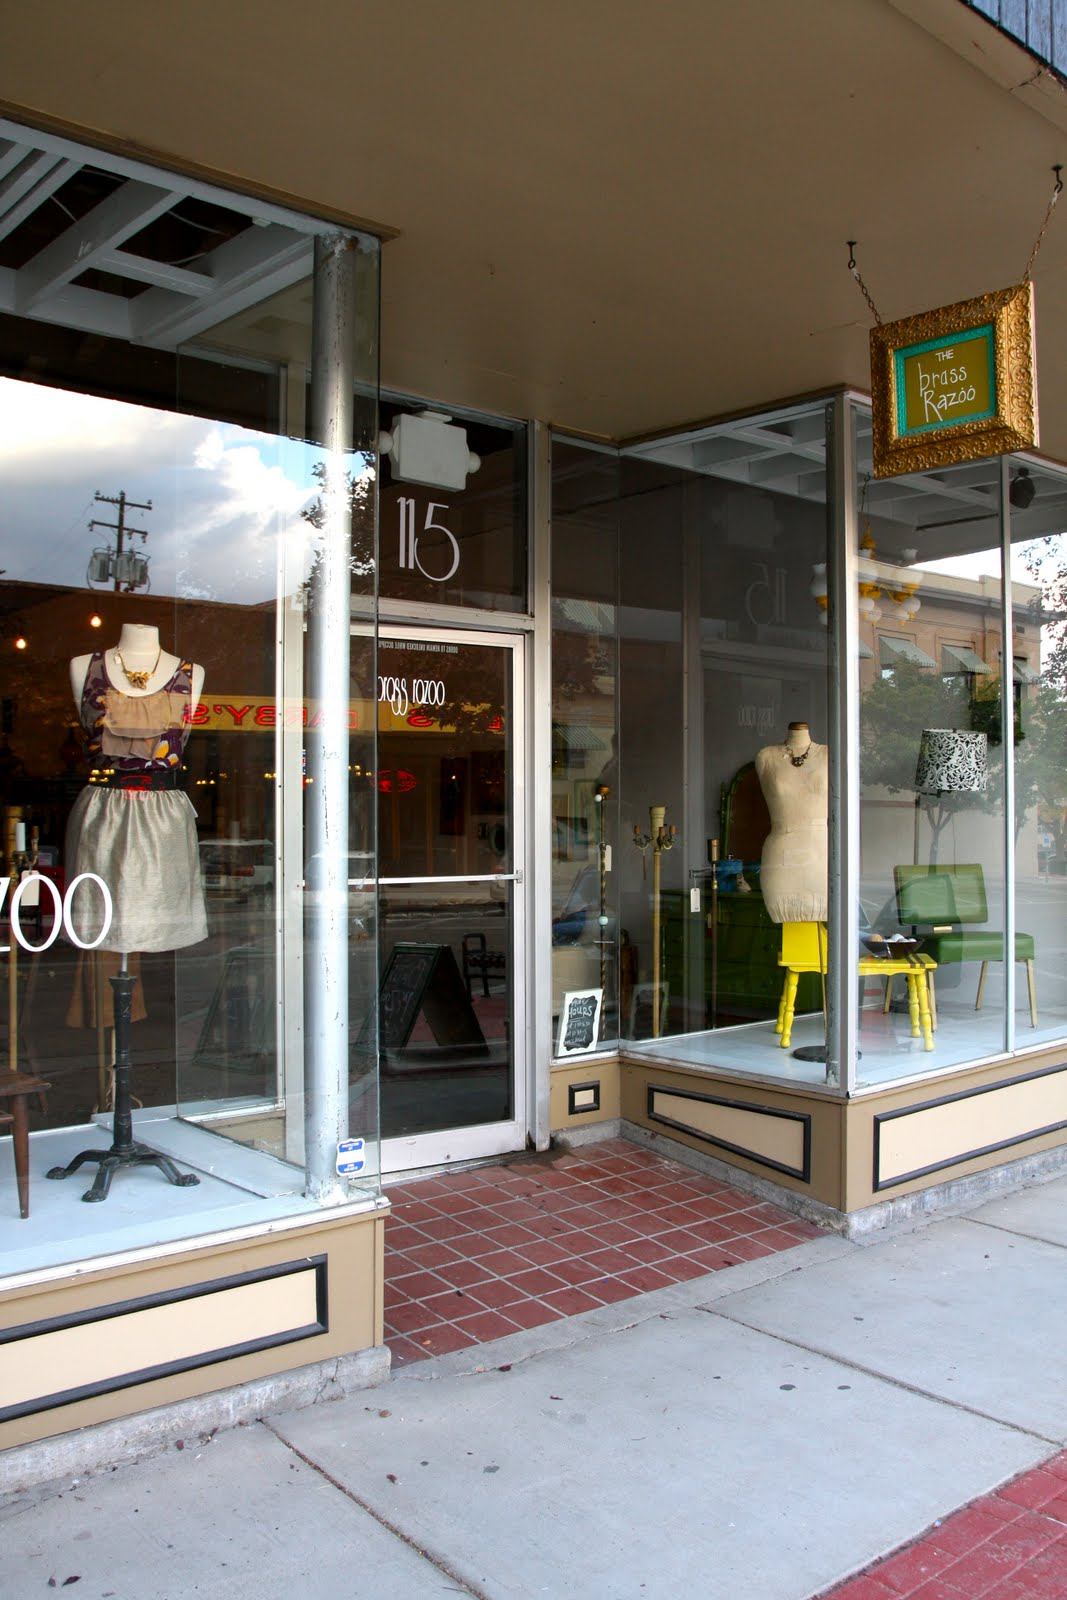 Juneberry Lane The Prettiest Shops On The Planet Part 4